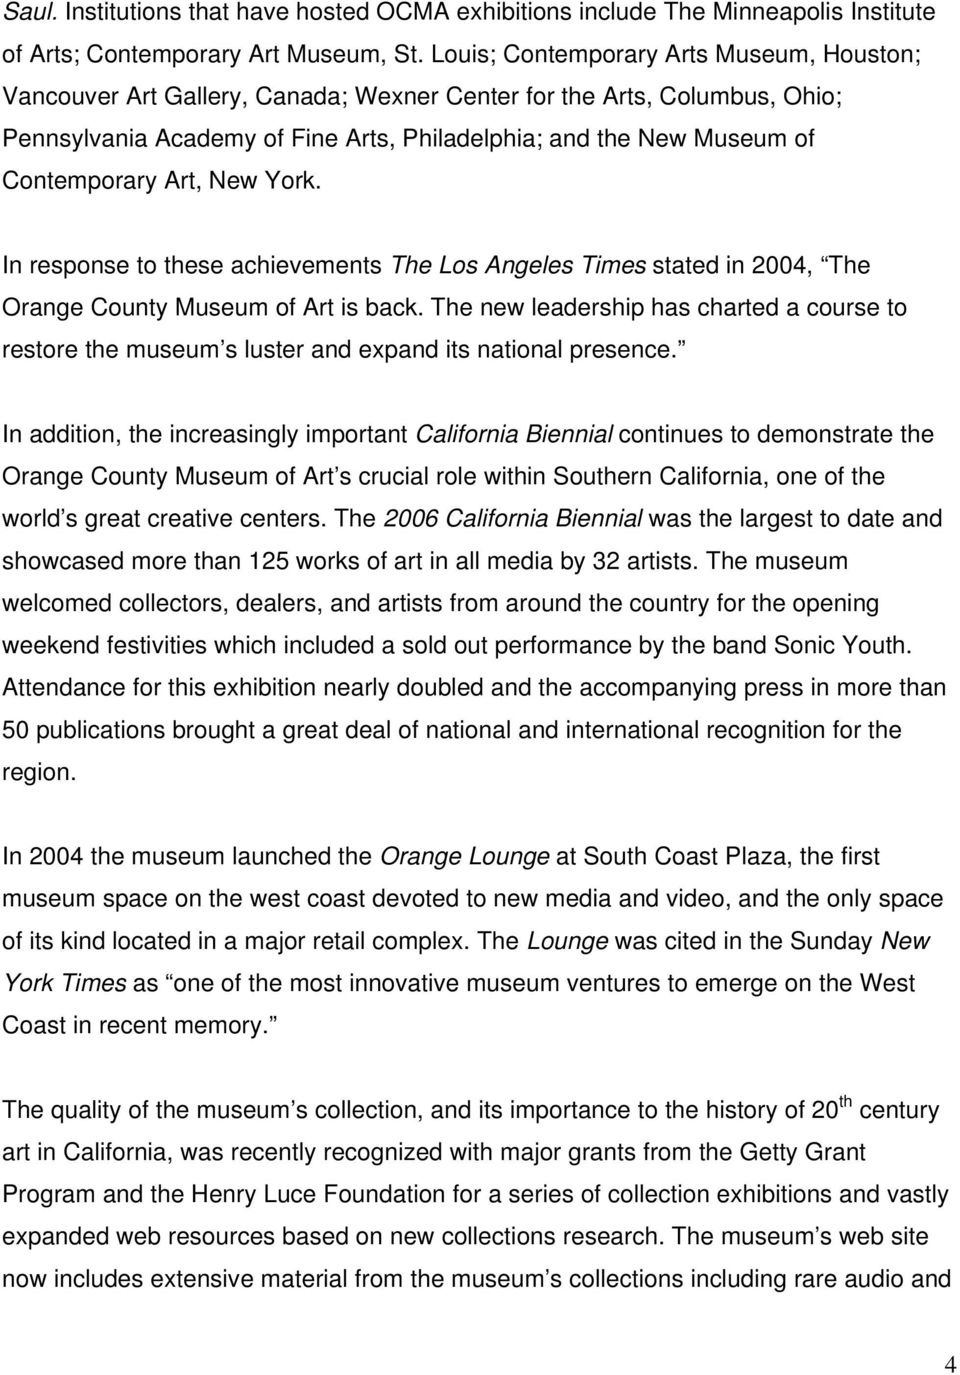 Contemporary Art, New York. In response to these achievements The Los Angeles Times stated in 2004, The Orange County Museum of Art is back.